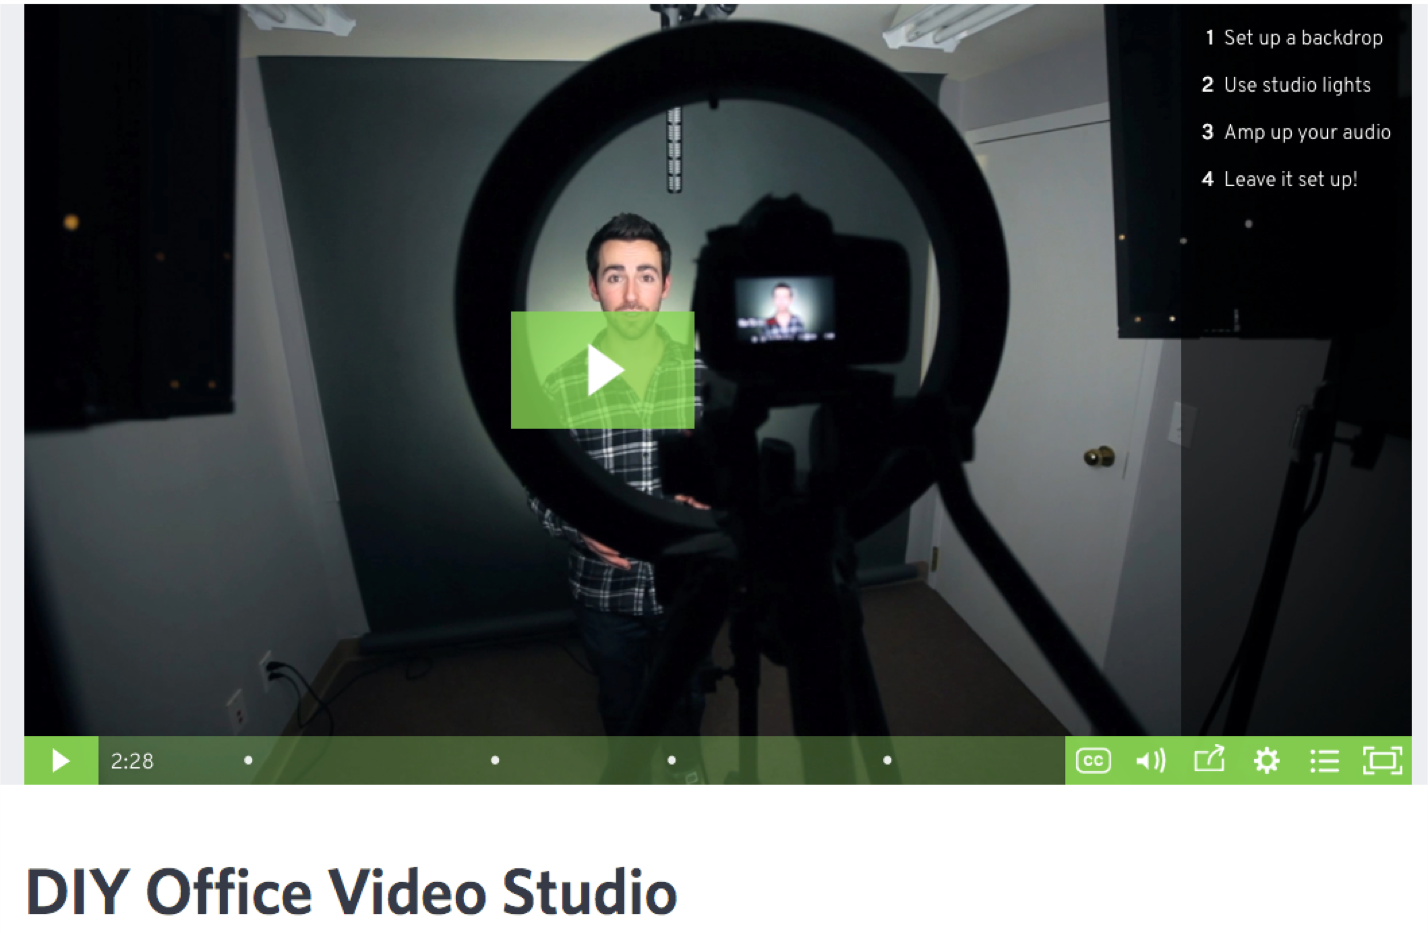 How to build video culture at your company DIY office video studio setup